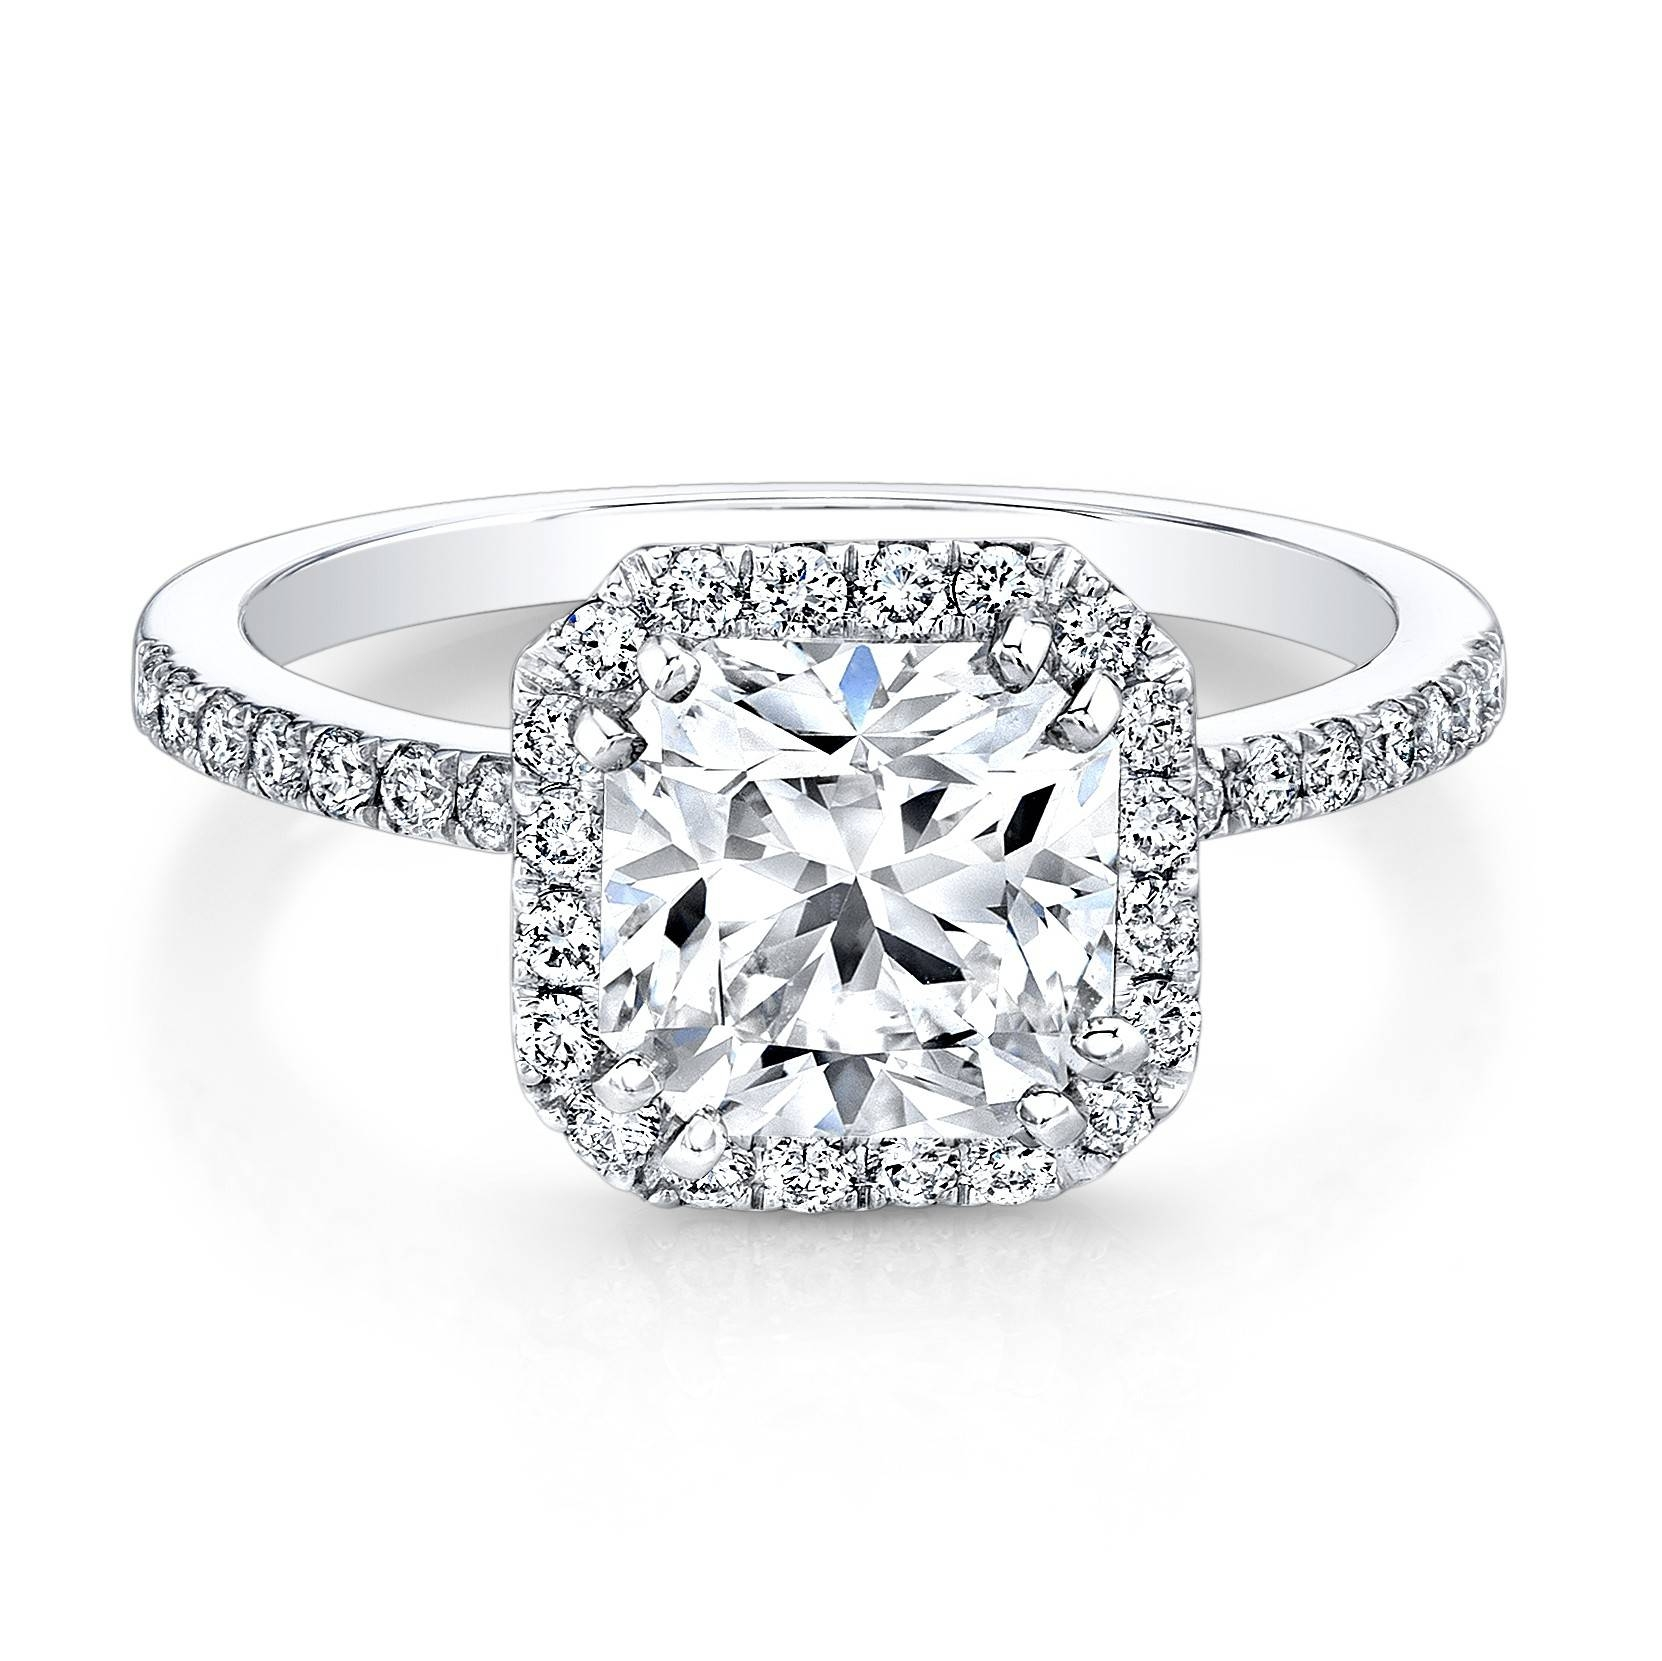 Square Engagement Rings With Diamond Band | Wedding, Promise With Regard To Wedding Rings With Diamond Band (View 12 of 15)